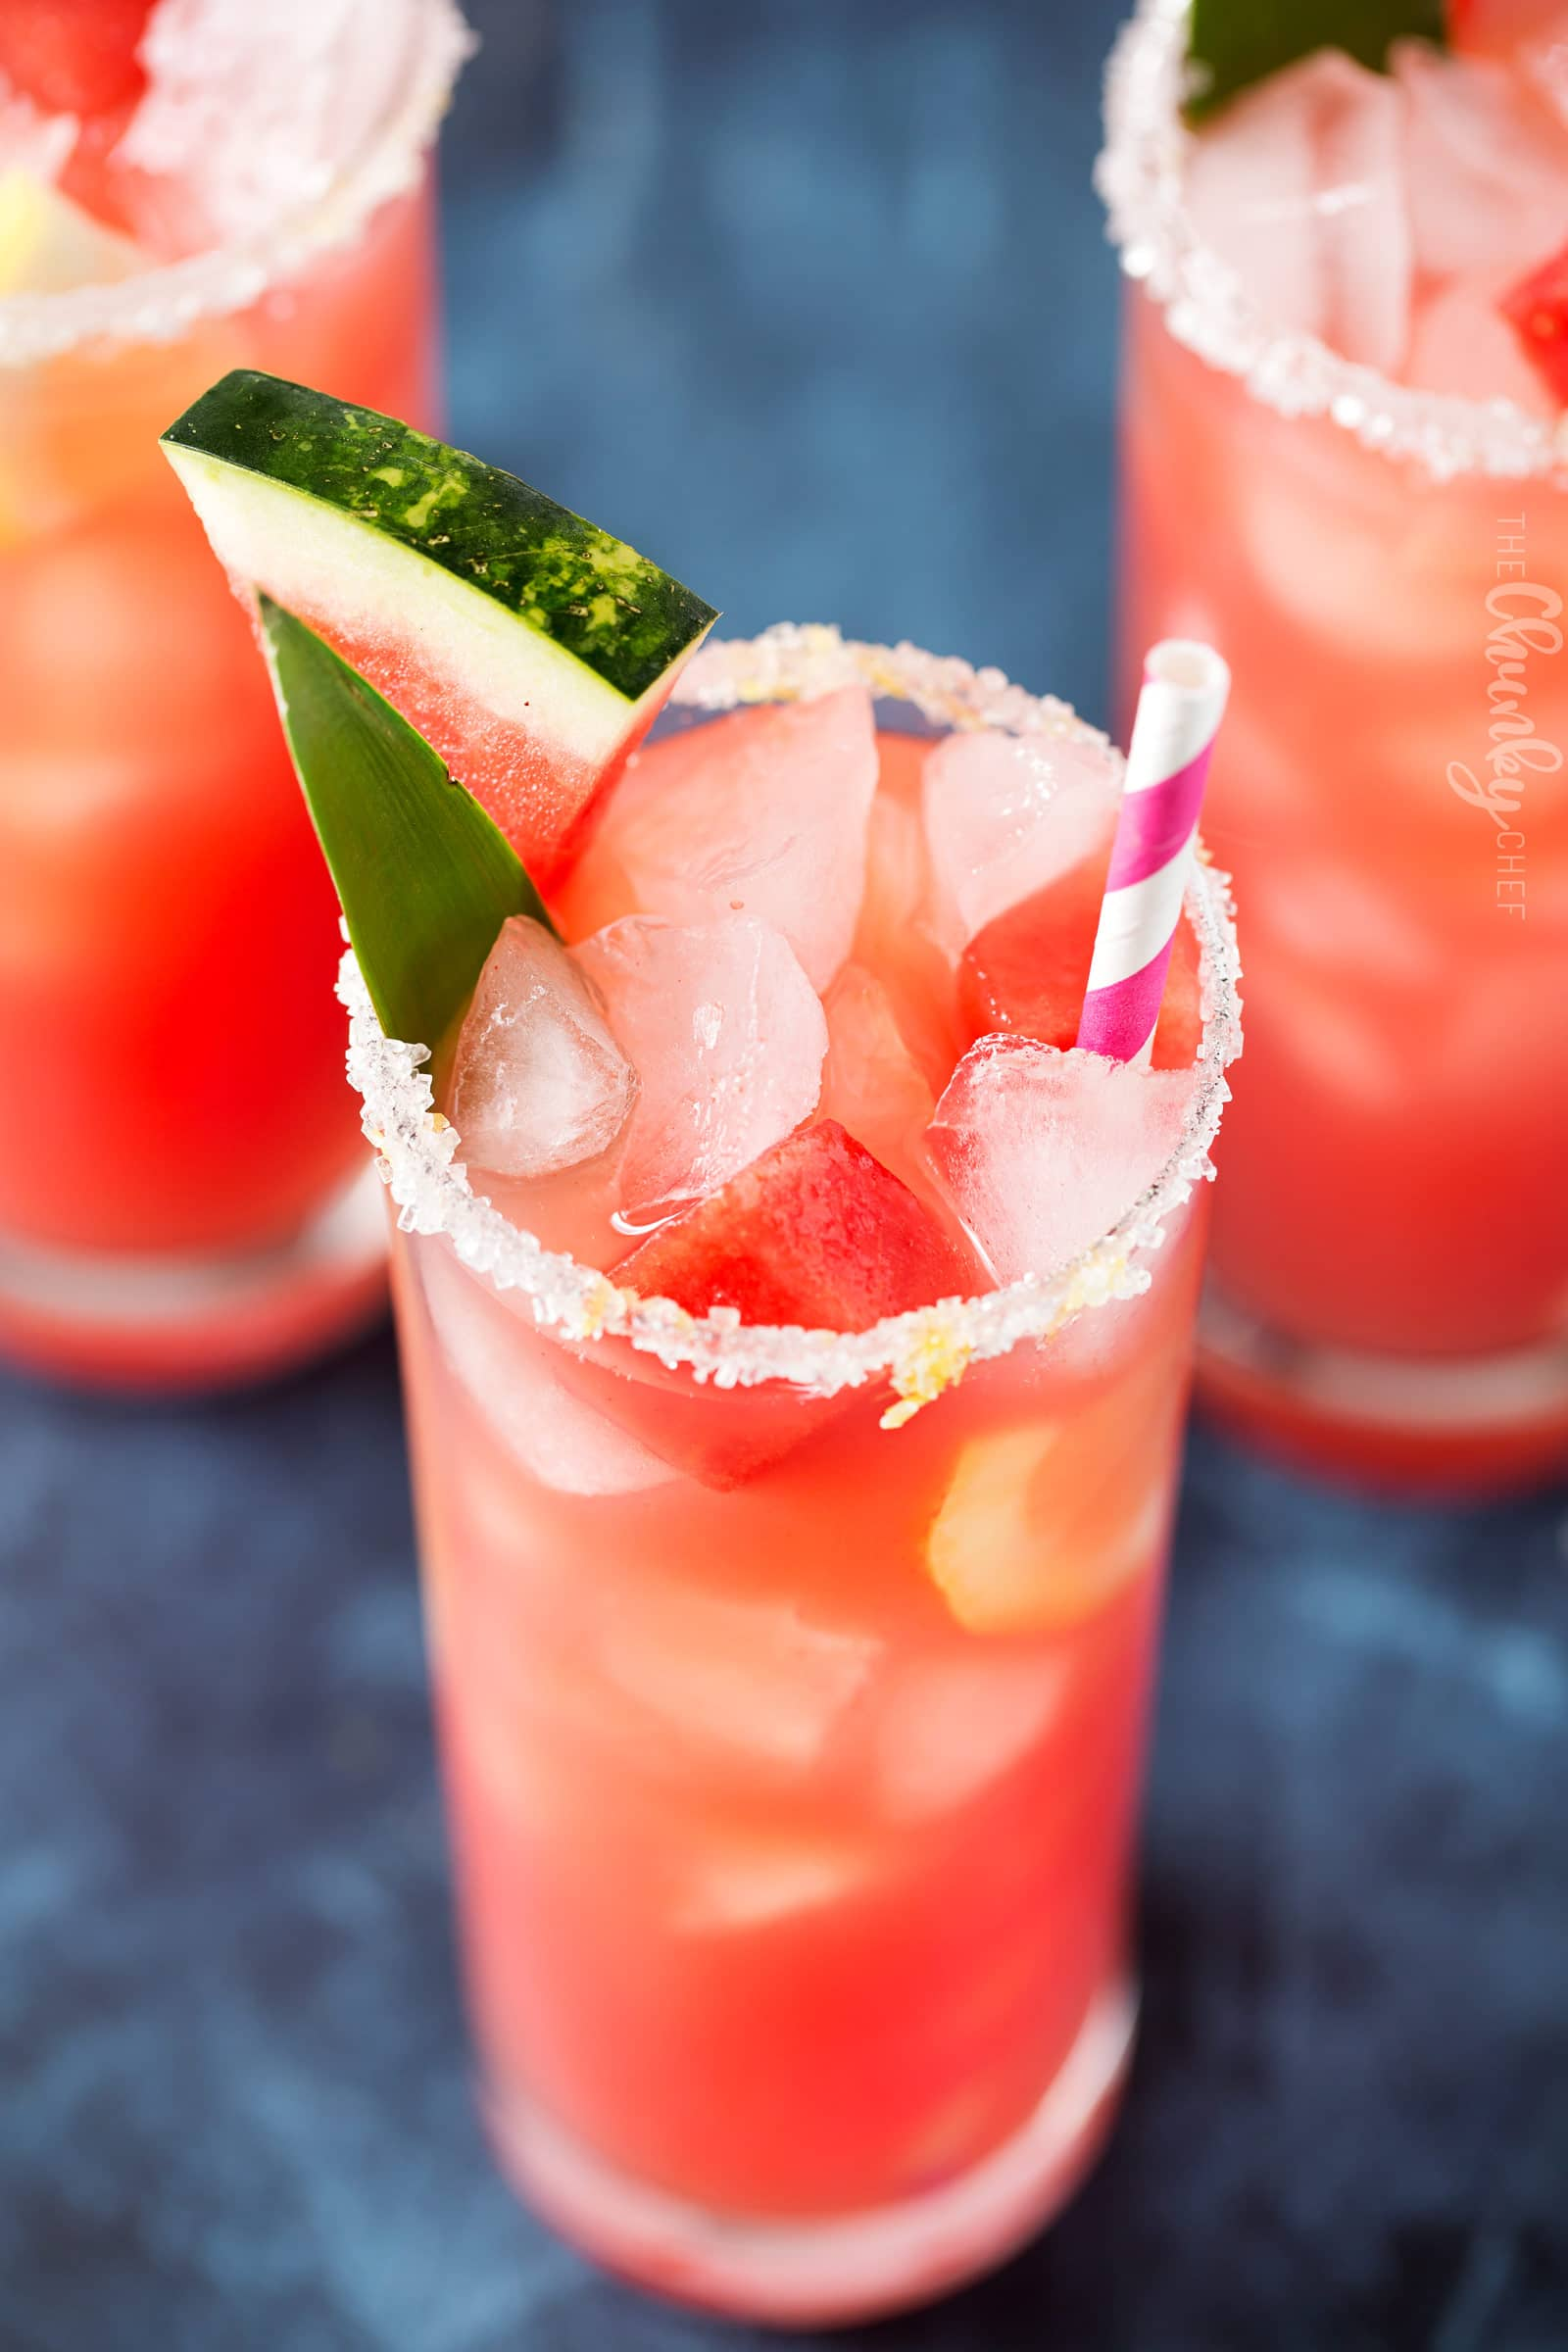 Summer Watermelon Lemonade | Sipping on this refreshing watermelon and pineapple lemonade is like taking a drink of pure summer! Easy to make, and you can add a bit of alcohol for an adults-only beverage! | http://thechunkychef.com